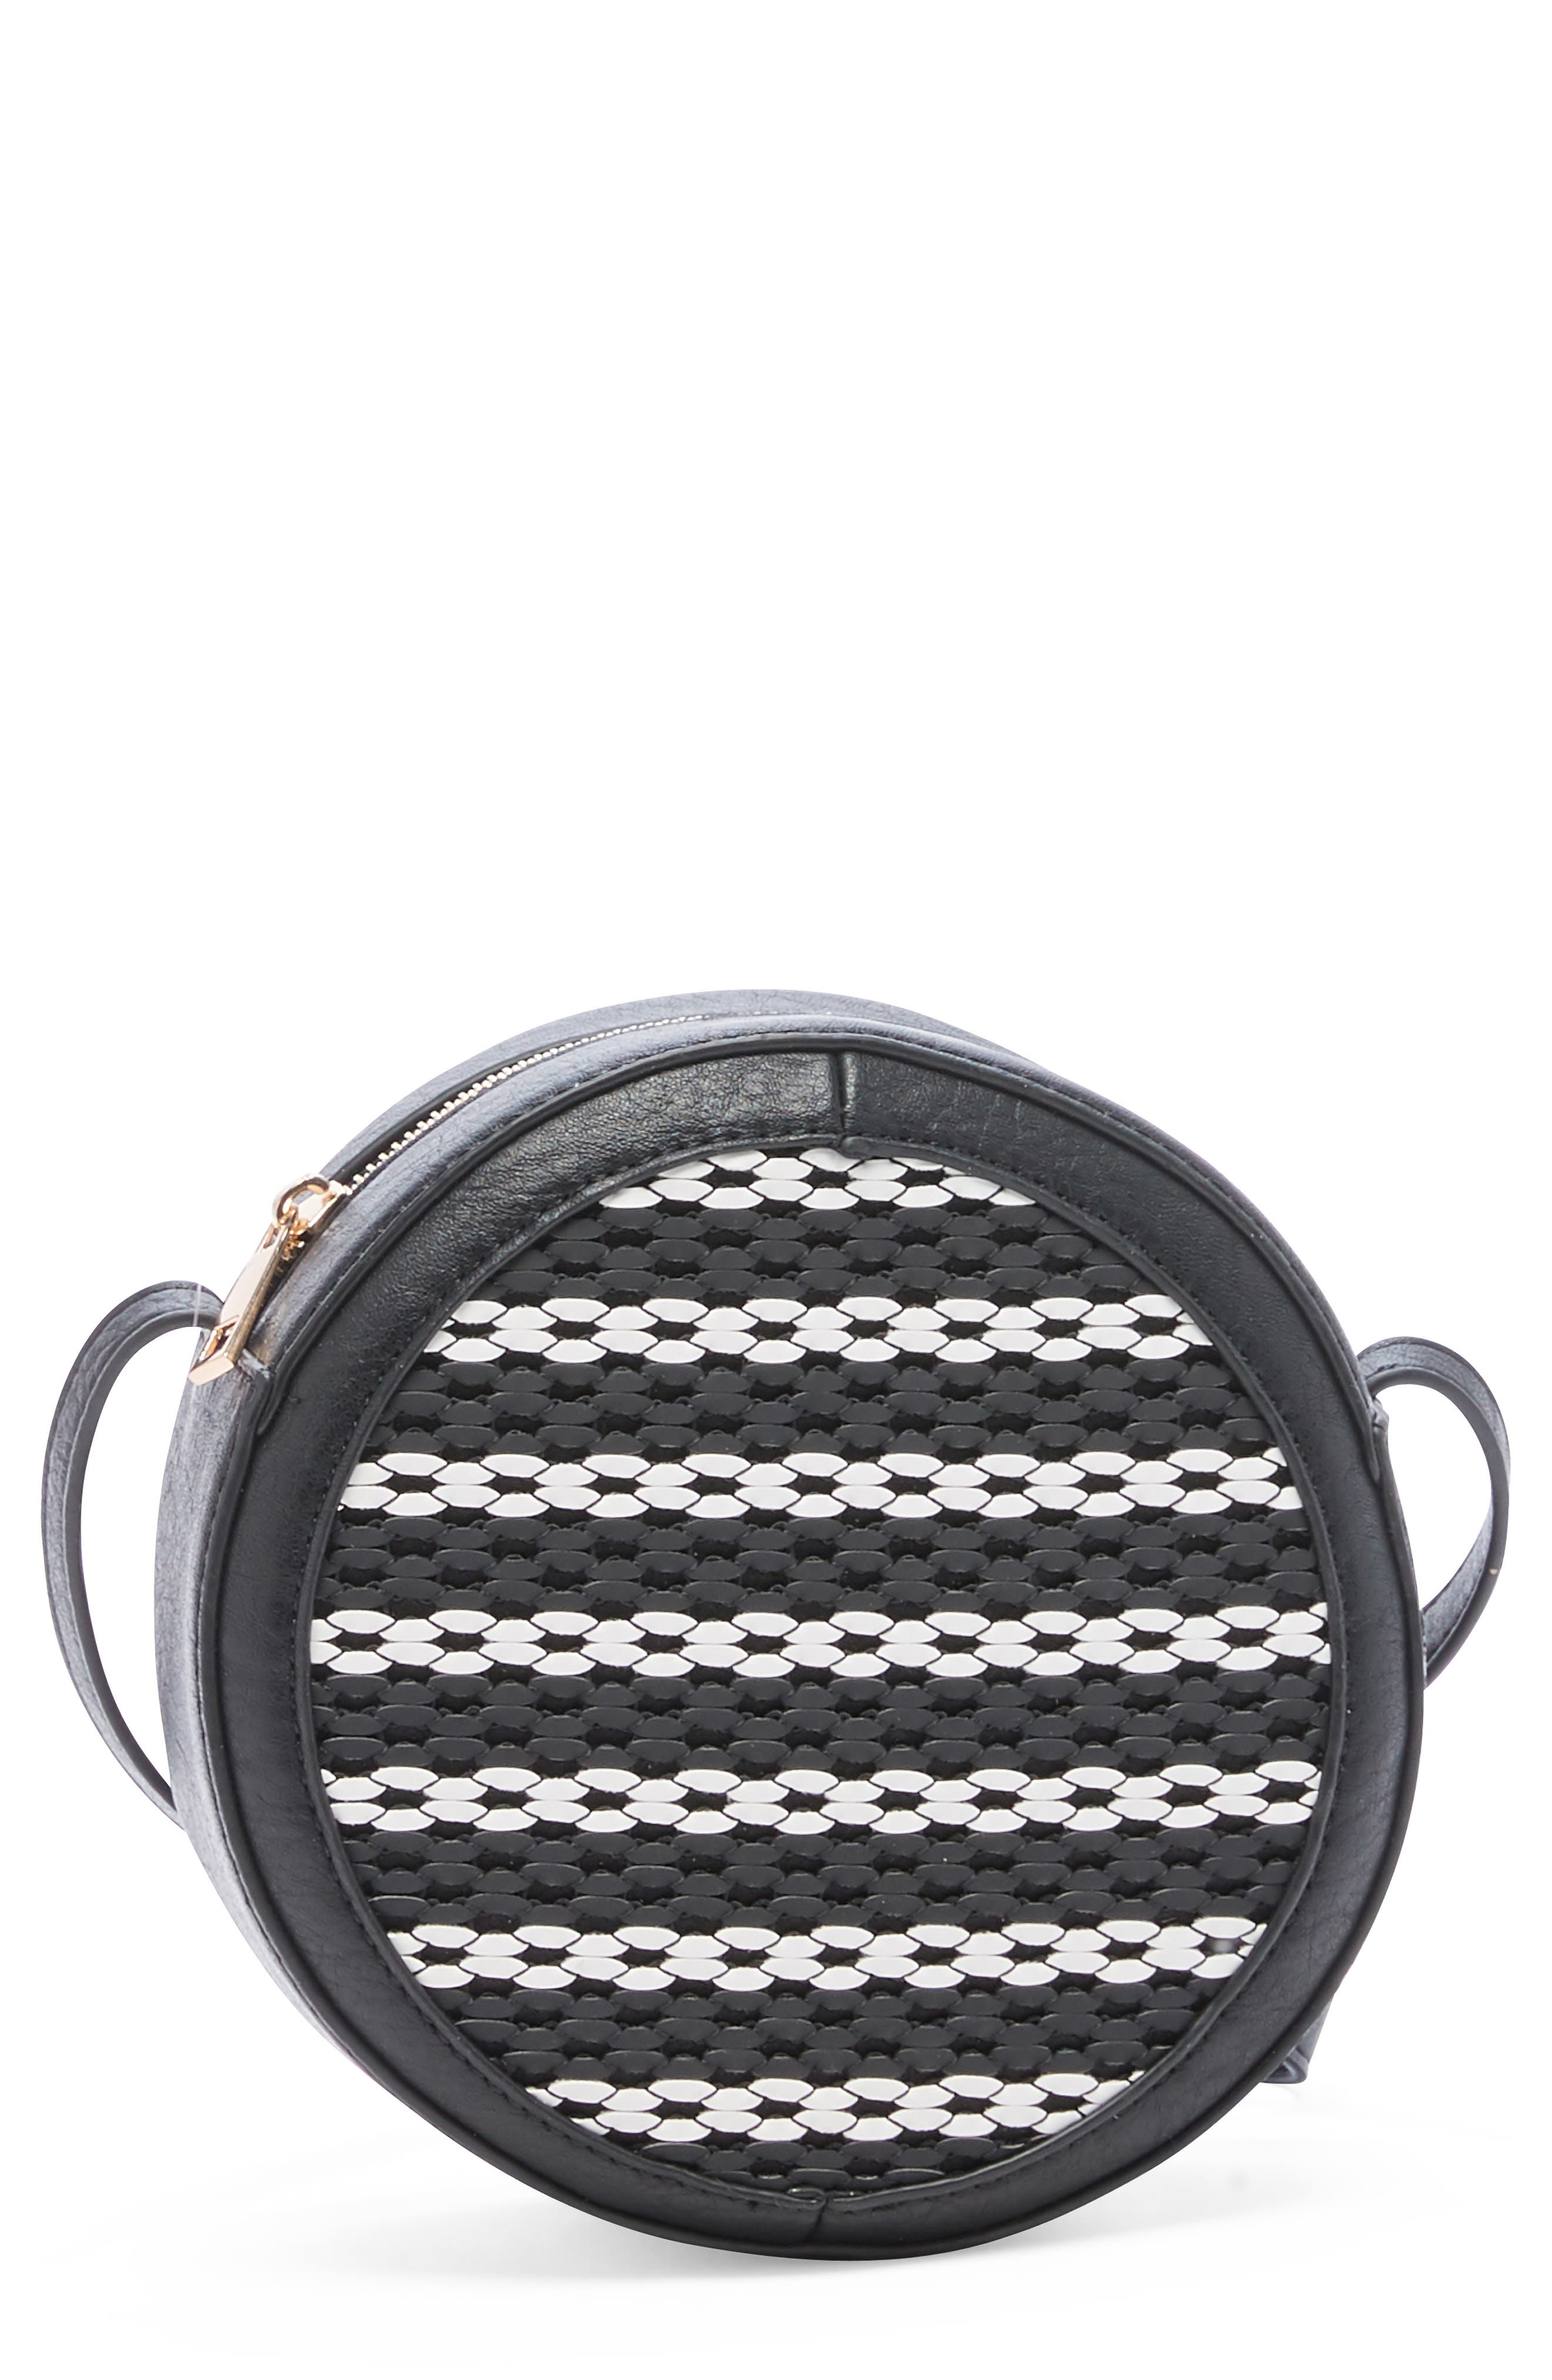 A bold herringbone weave brings texture to this trend-right circle bag designed to be worn crossbody style. Style Name: Sole Society Nikole Mini Circle Crossbody Bag. Style Number: 6023793. Available in stores.